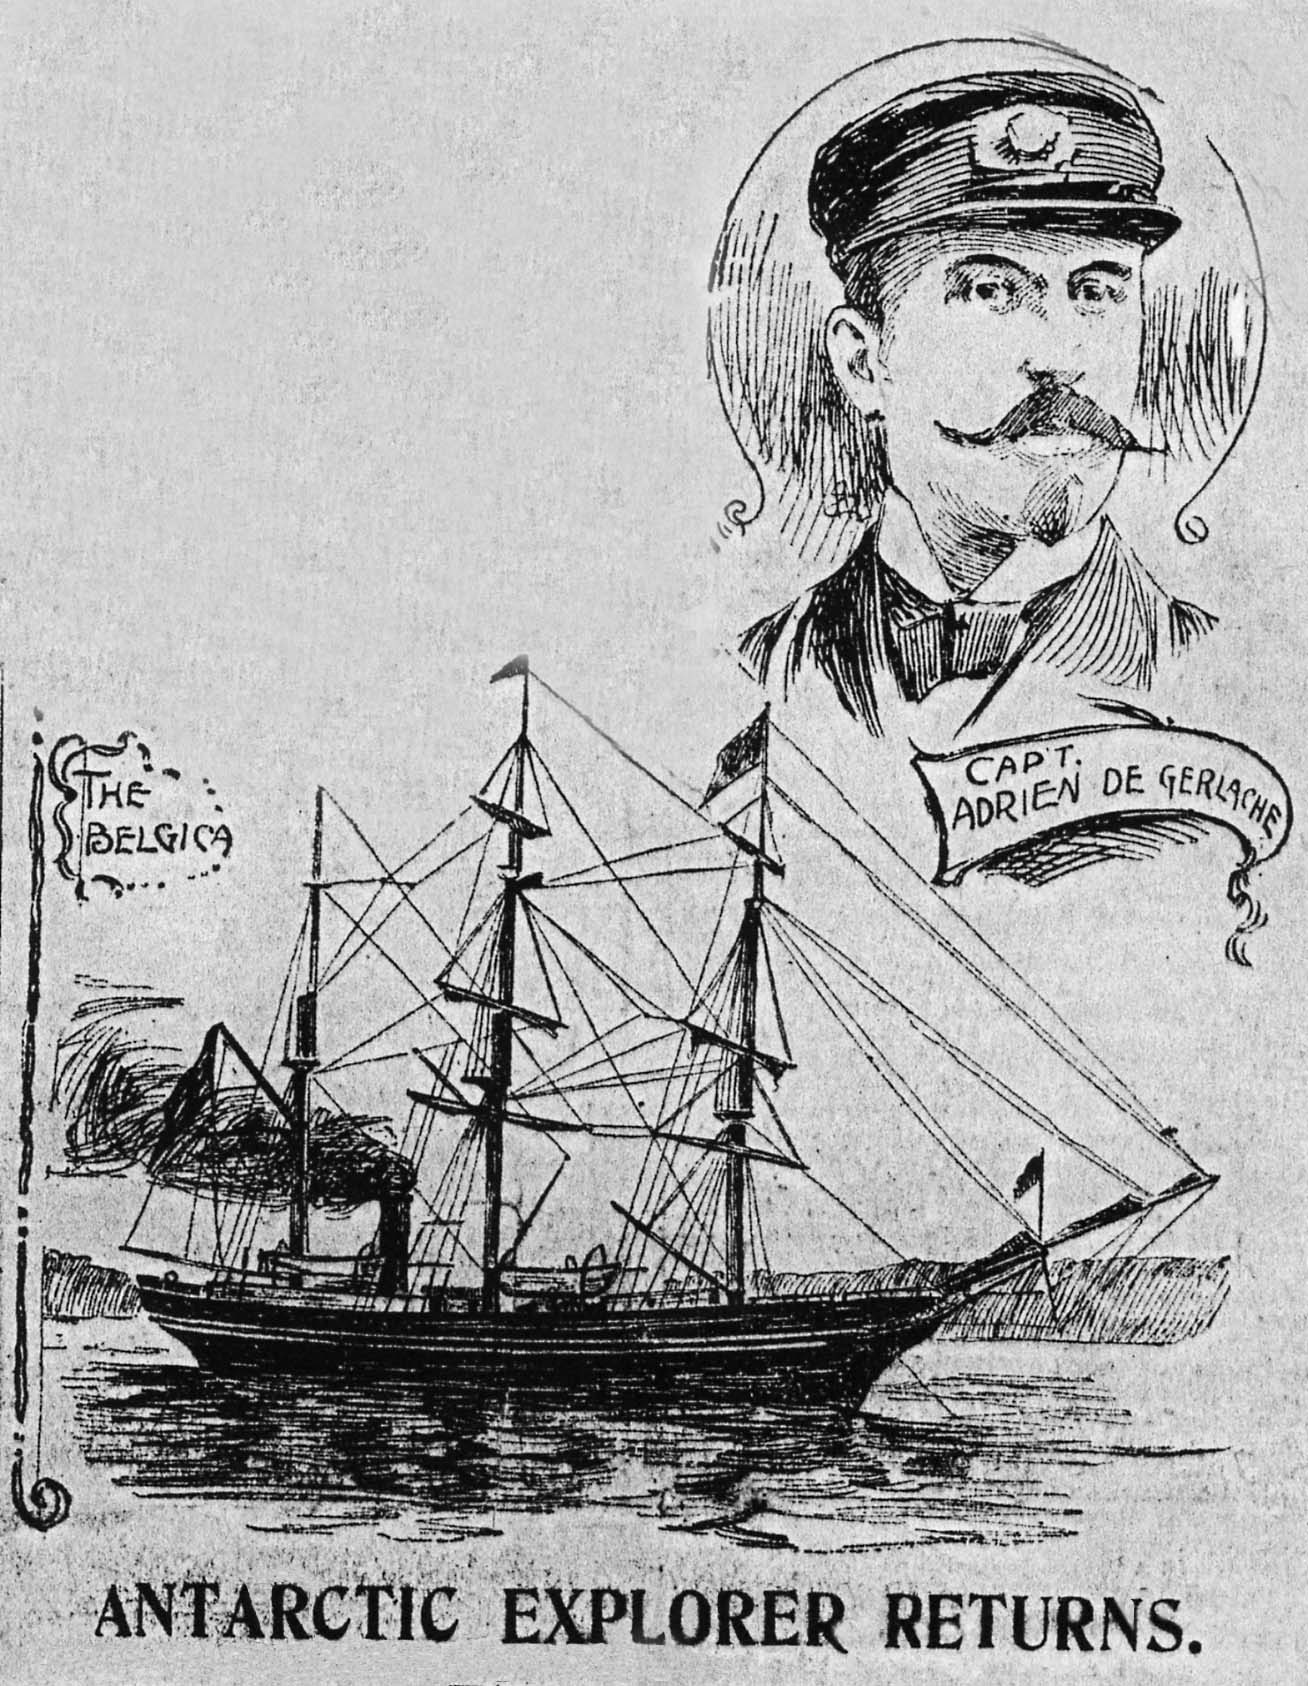 Expedition Made Successful Return From >> New World Opened Brooklyn April 4 1899